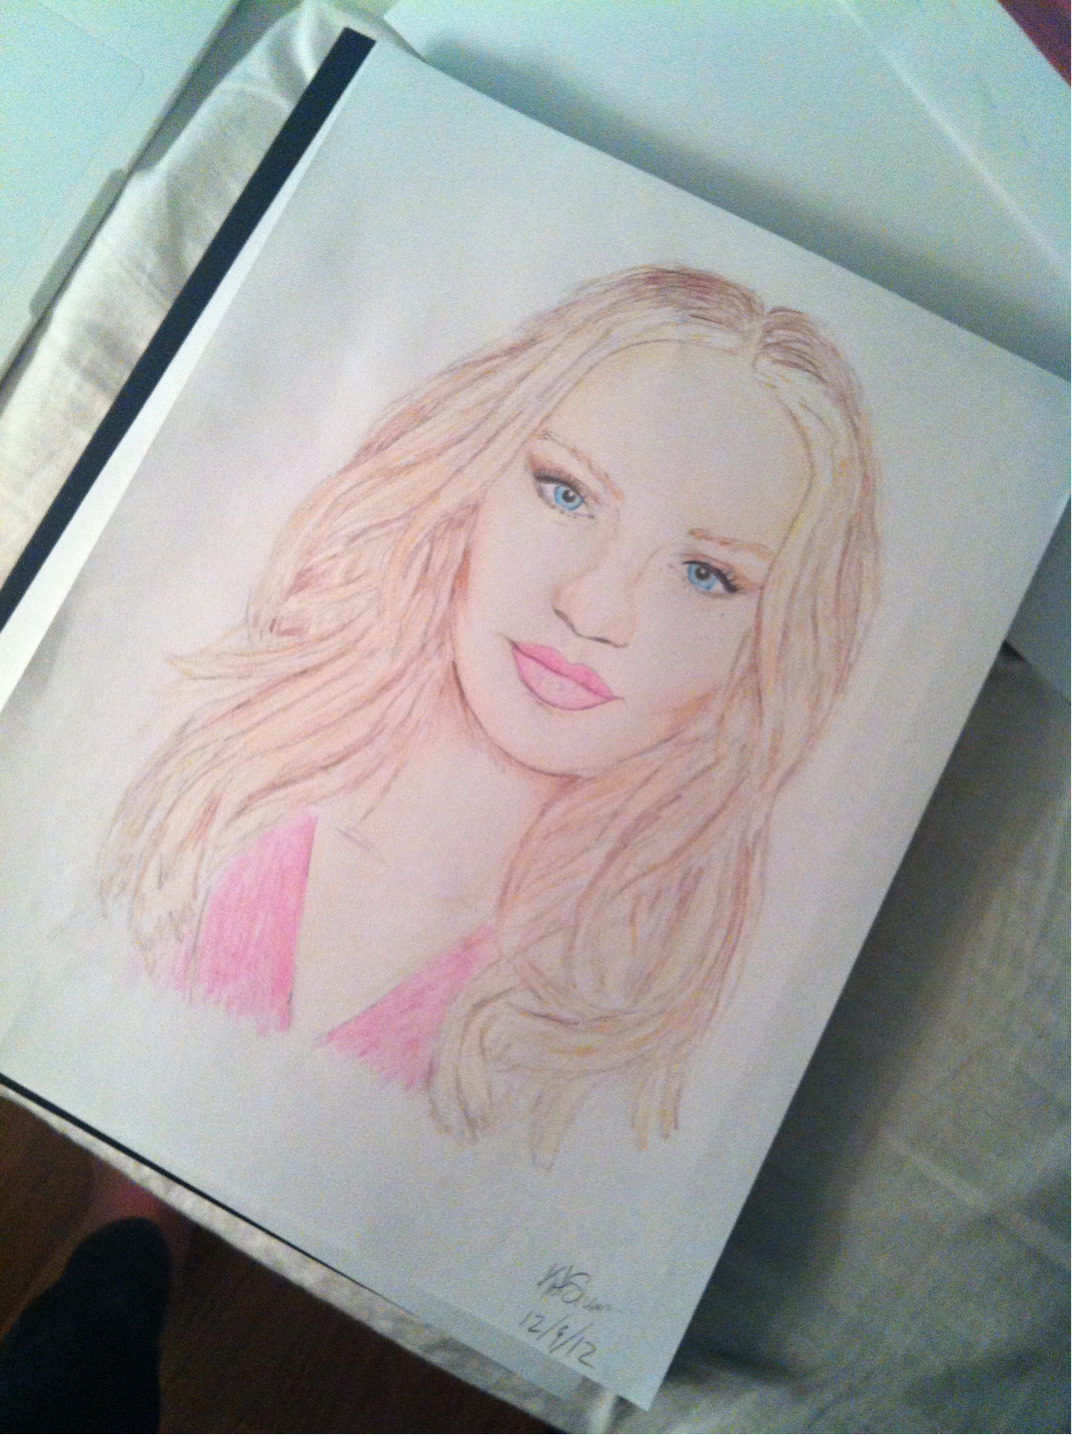 Got bored and drew Candice